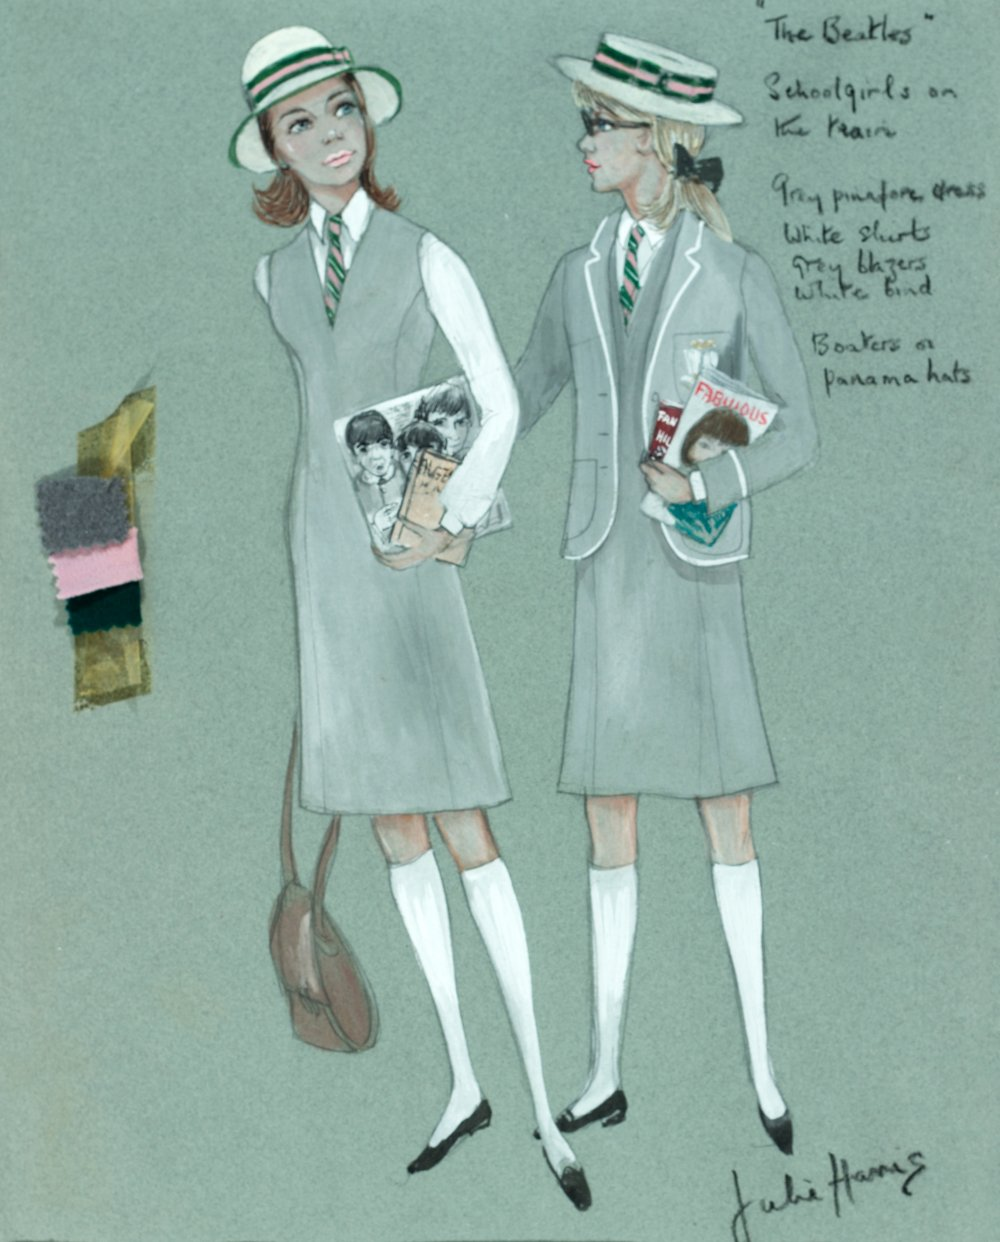 Schoolgirls costume design by Julie Harris, 1964. Julie Harris designed the costumes for A Hard Day's Night, working in conjunction with the Beatles' tailor Dougie Millings. This design by Harris is for the two schoolgirls (Prue Barry and Pattie Boyd) John and Paul encounter and serenade while travelling by train to London. Harris would also design the costumes for Help!